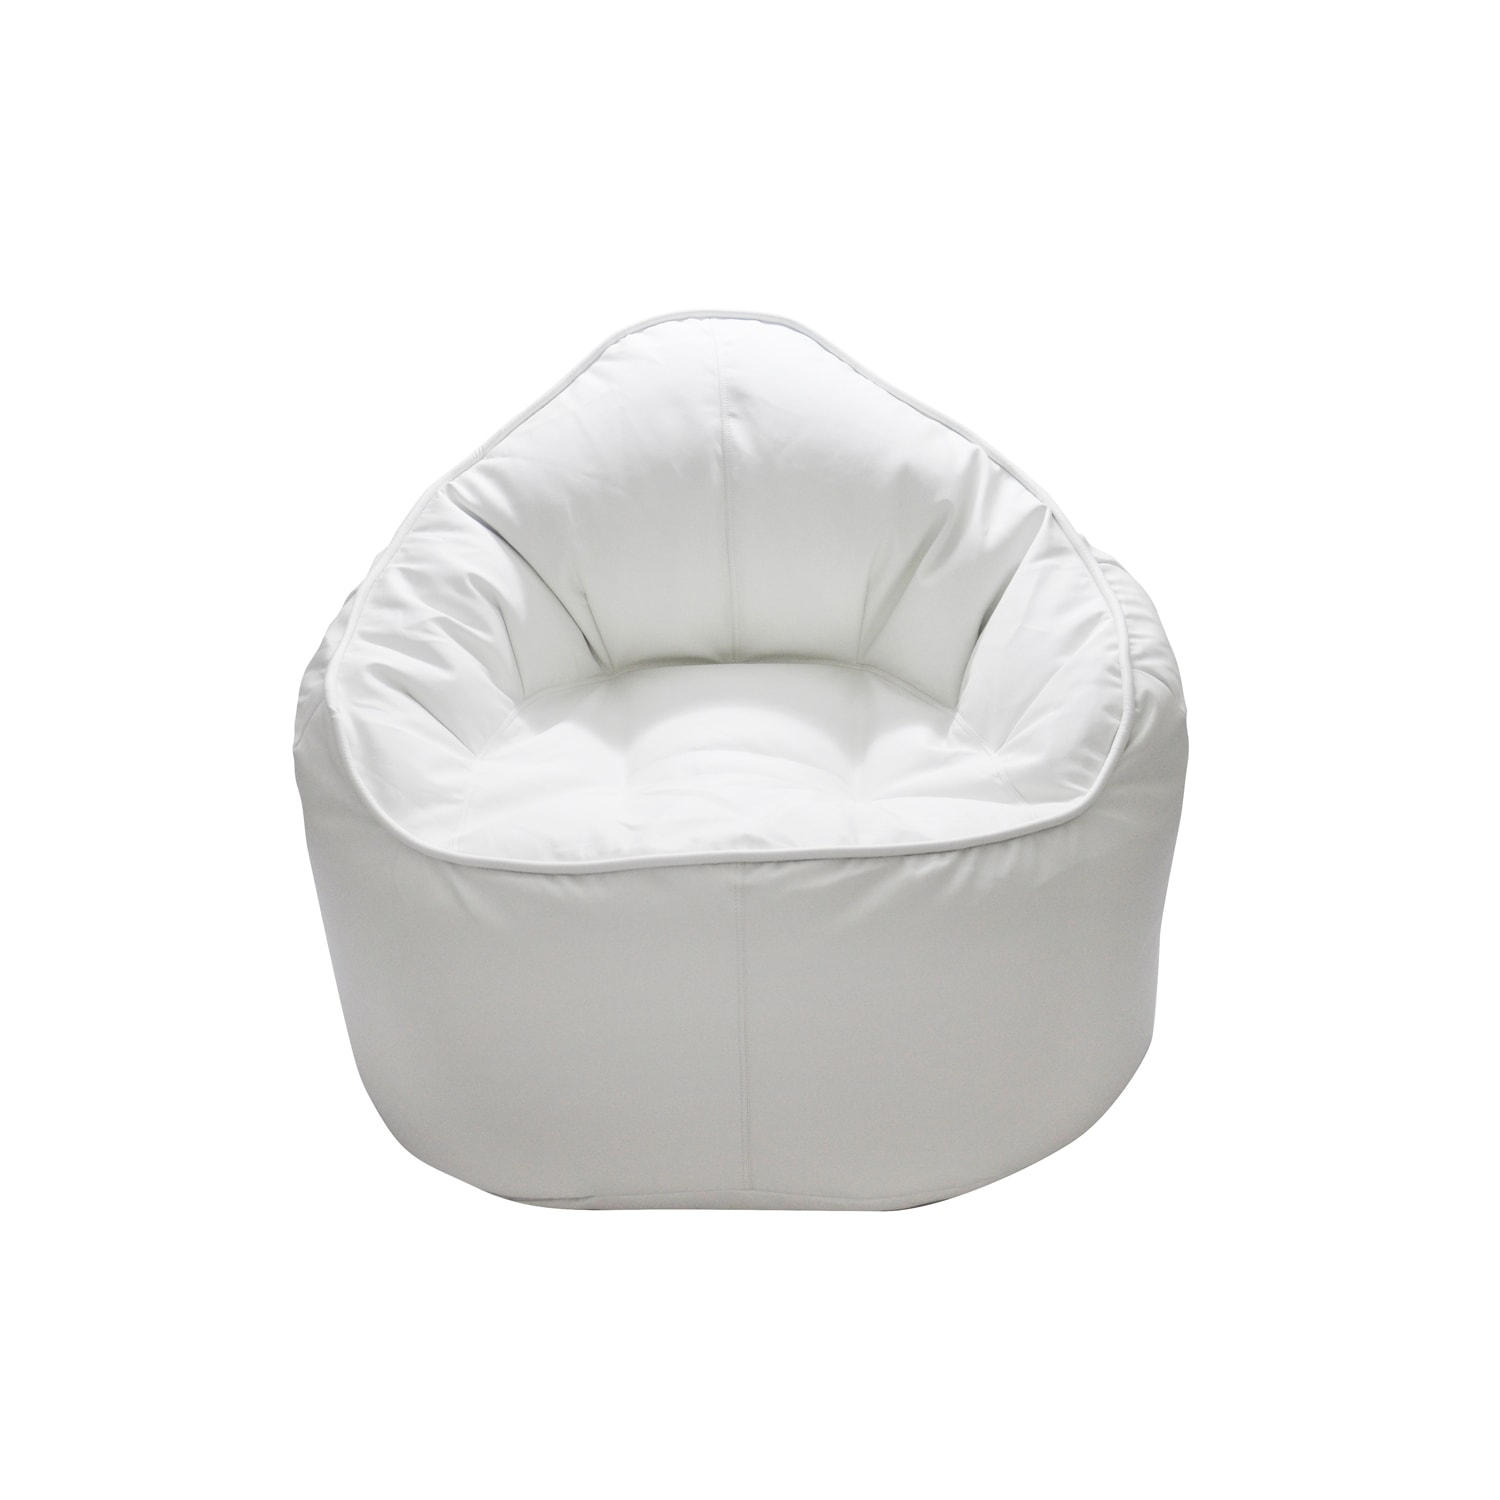 Red Rosewood The Giant Pod White Faux Leather Bean Bag Chair Free Shipping Today 13042390